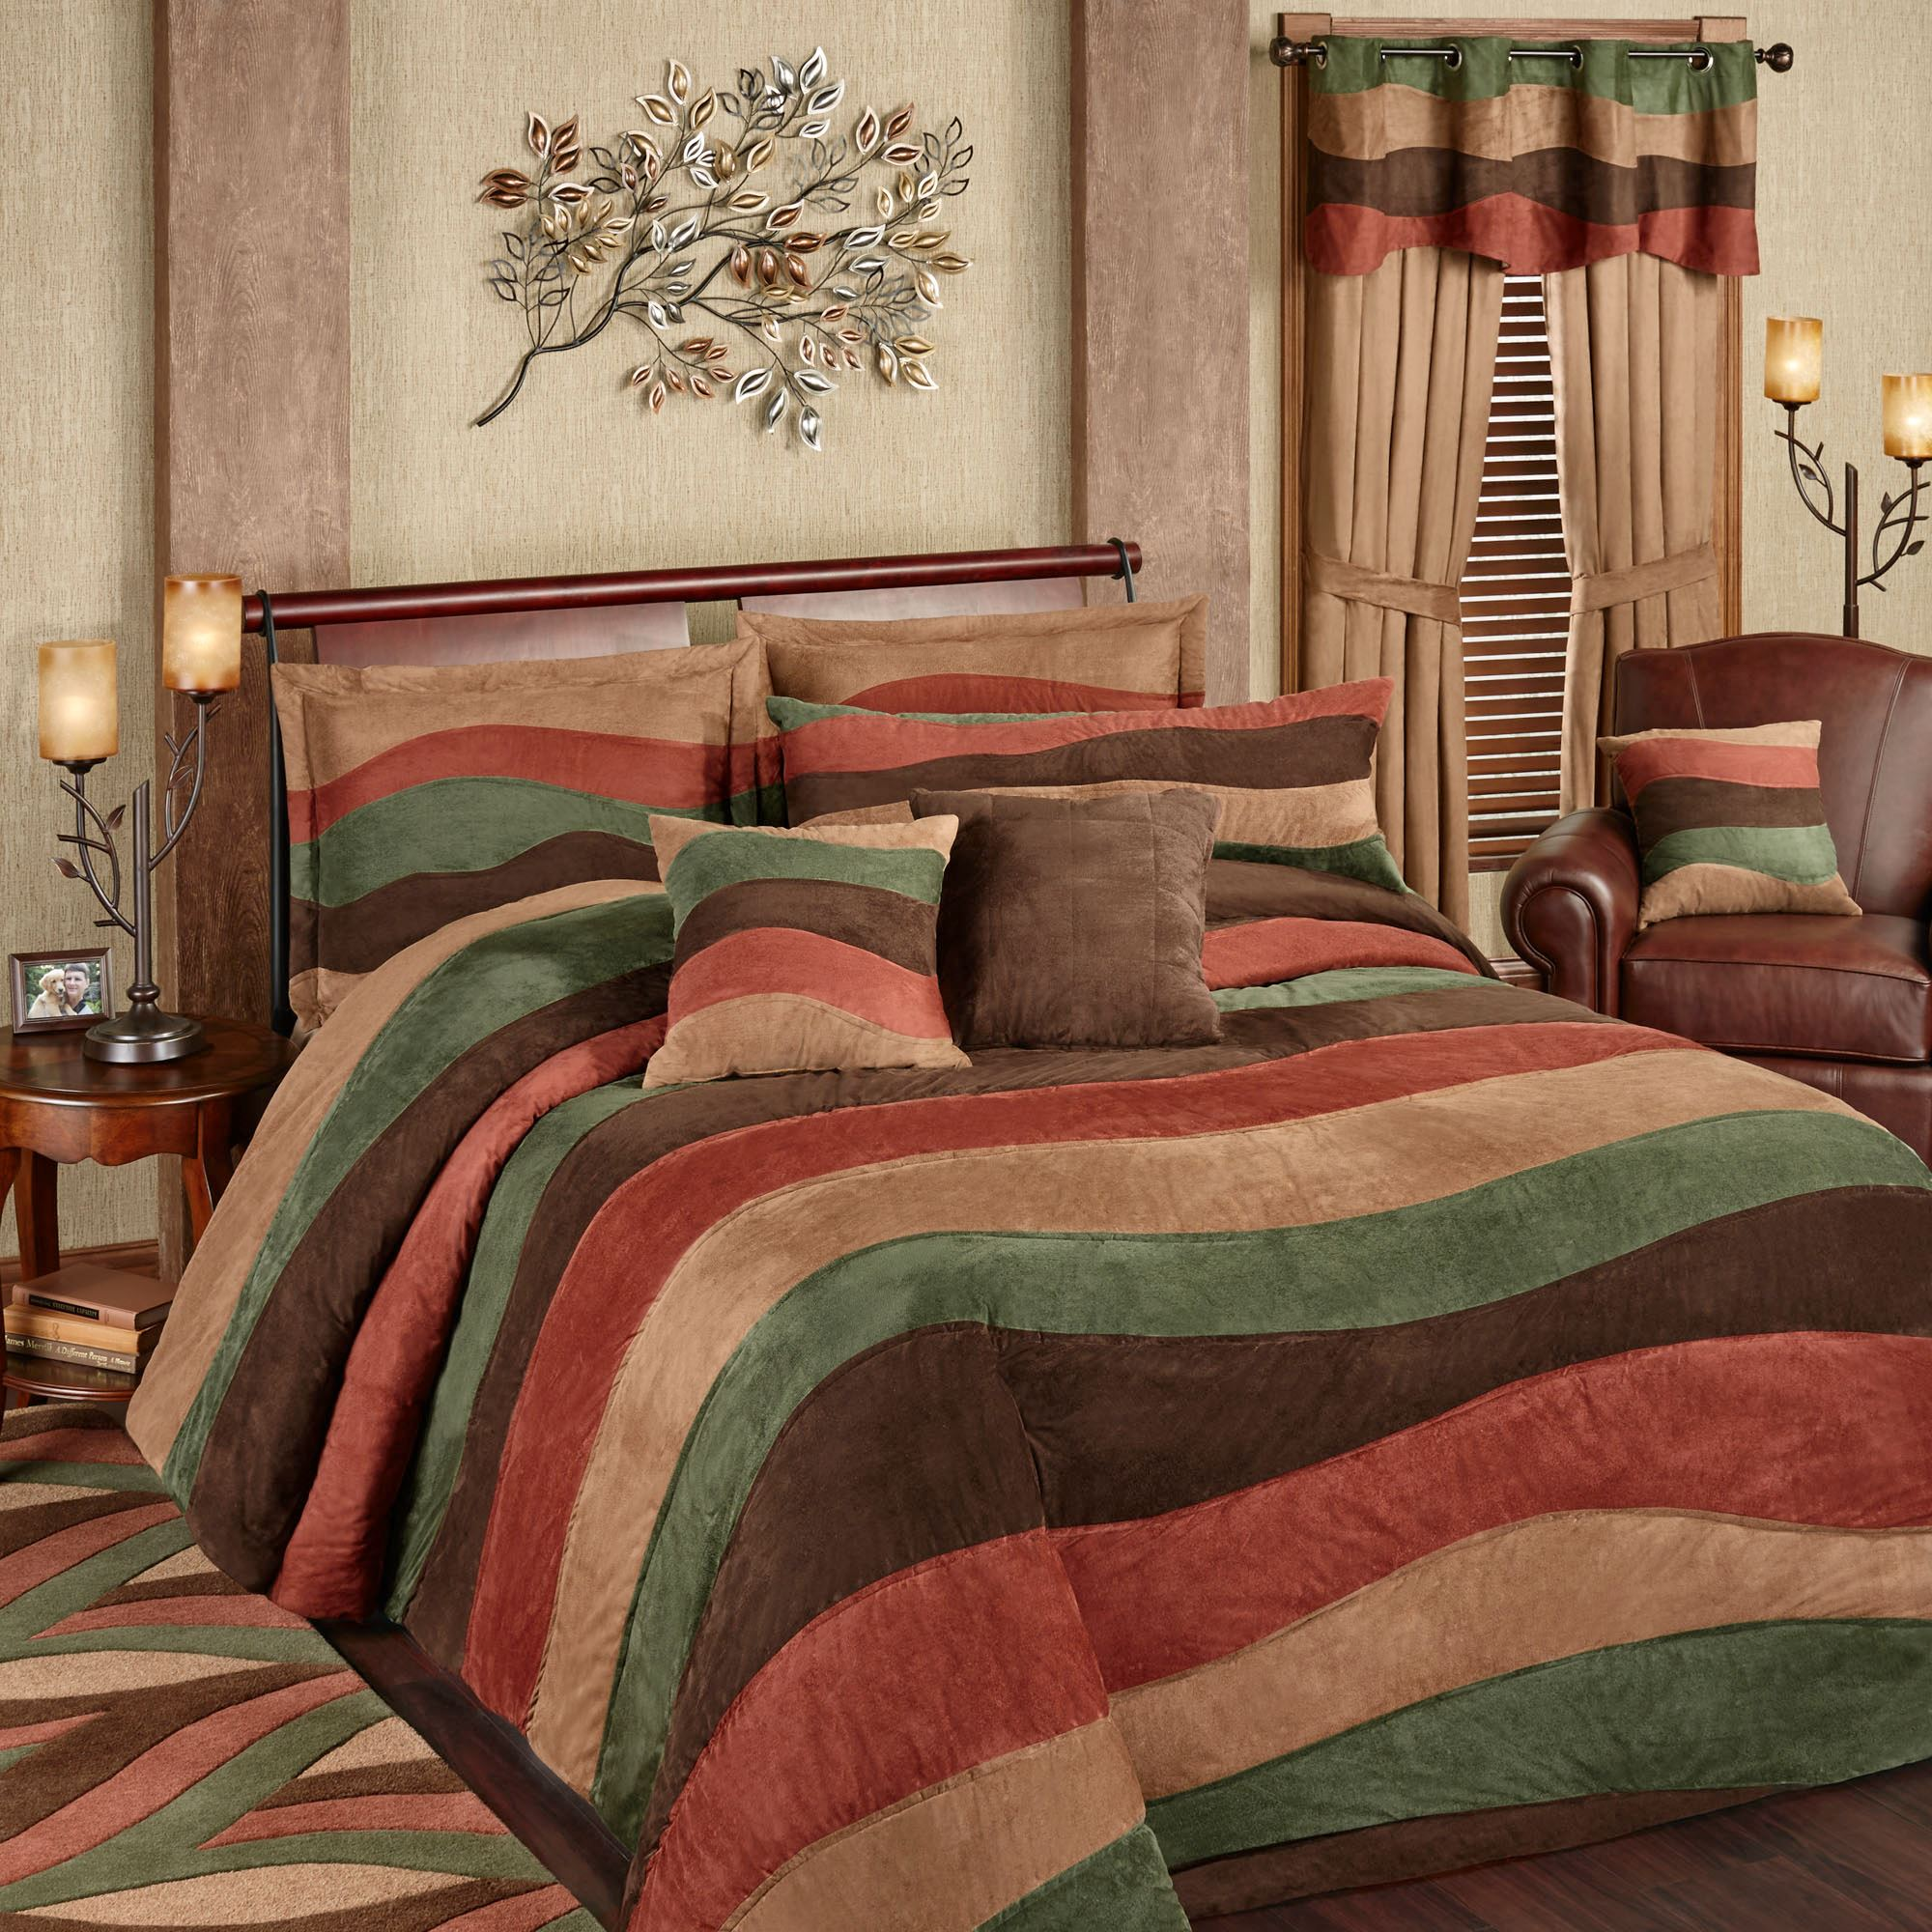 Simple Oversized King Size Bedding Home Oversized King Quilts Sale Oversized King Quilts Coastal Oversized King Quilts Bedding Bedding Designs Design houzz 01 Oversized King Quilts